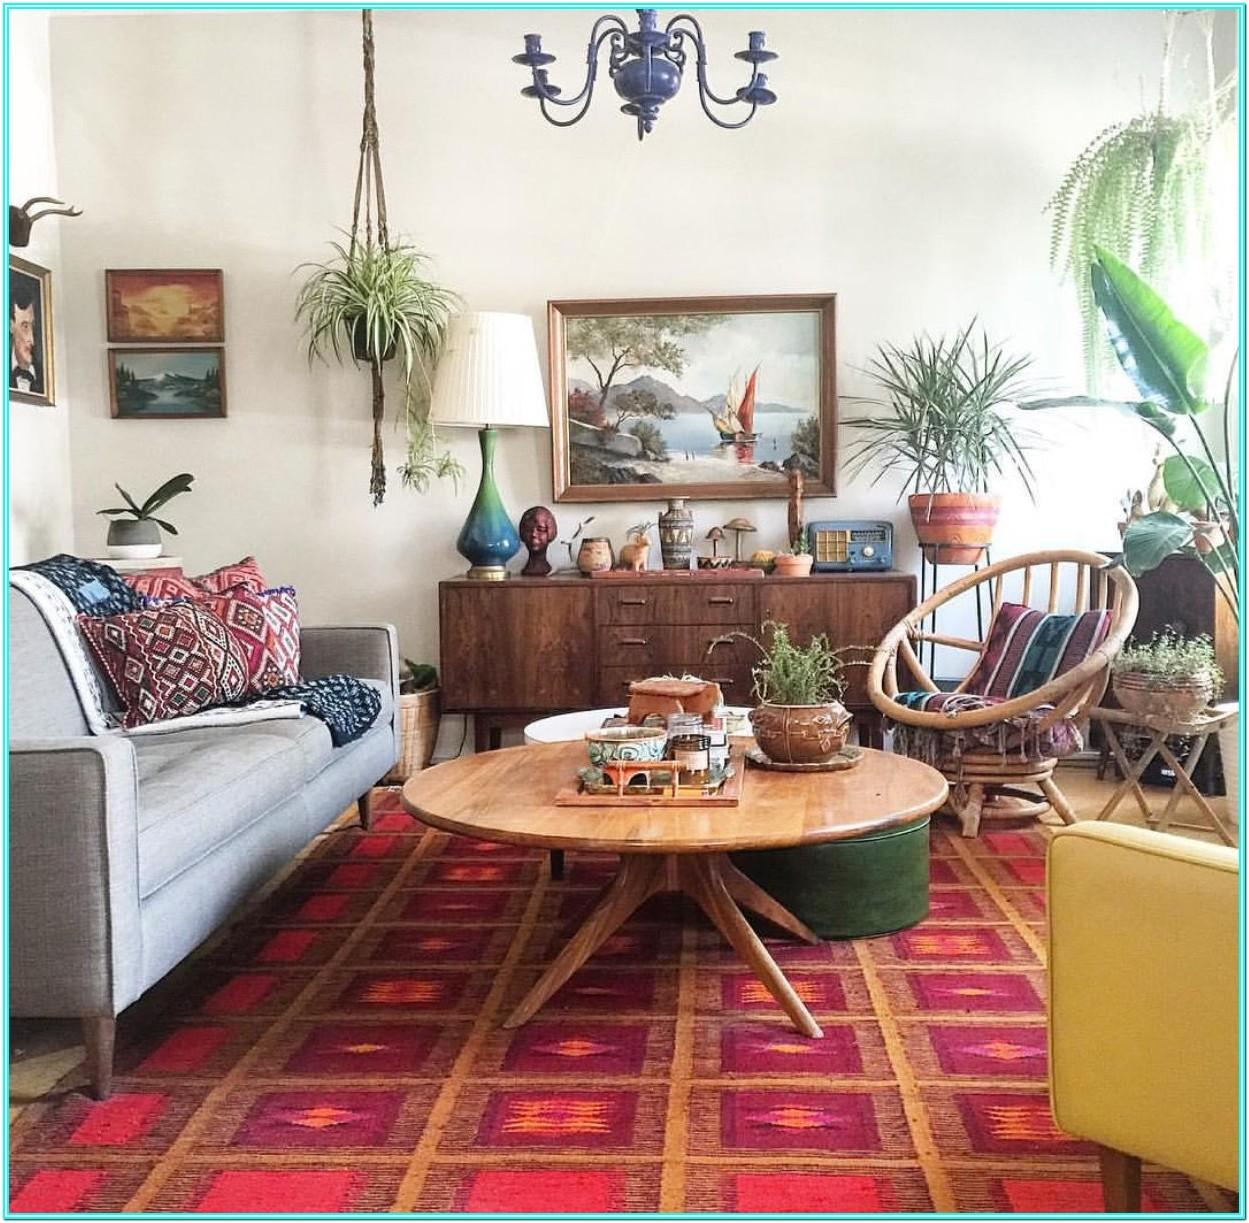 Living Room Interior Design With Plants